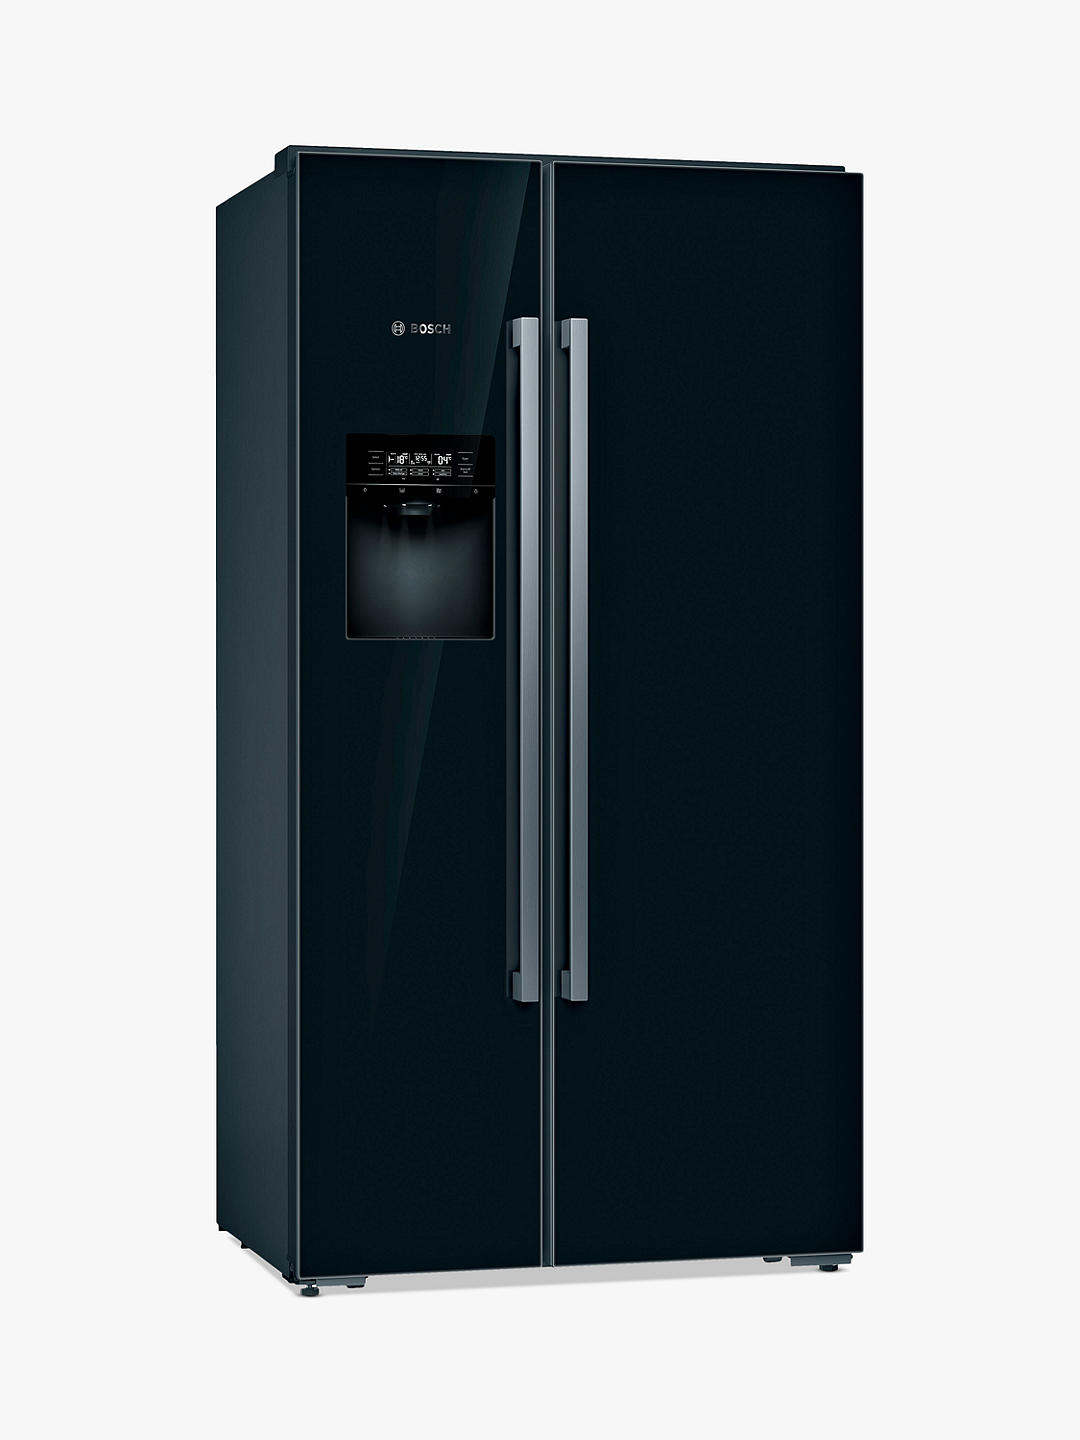 Buy Bosch Serie 8 KAD92HBFP Freestanding 70/30 American Fridge Freezer, Black Online at johnlewis.com